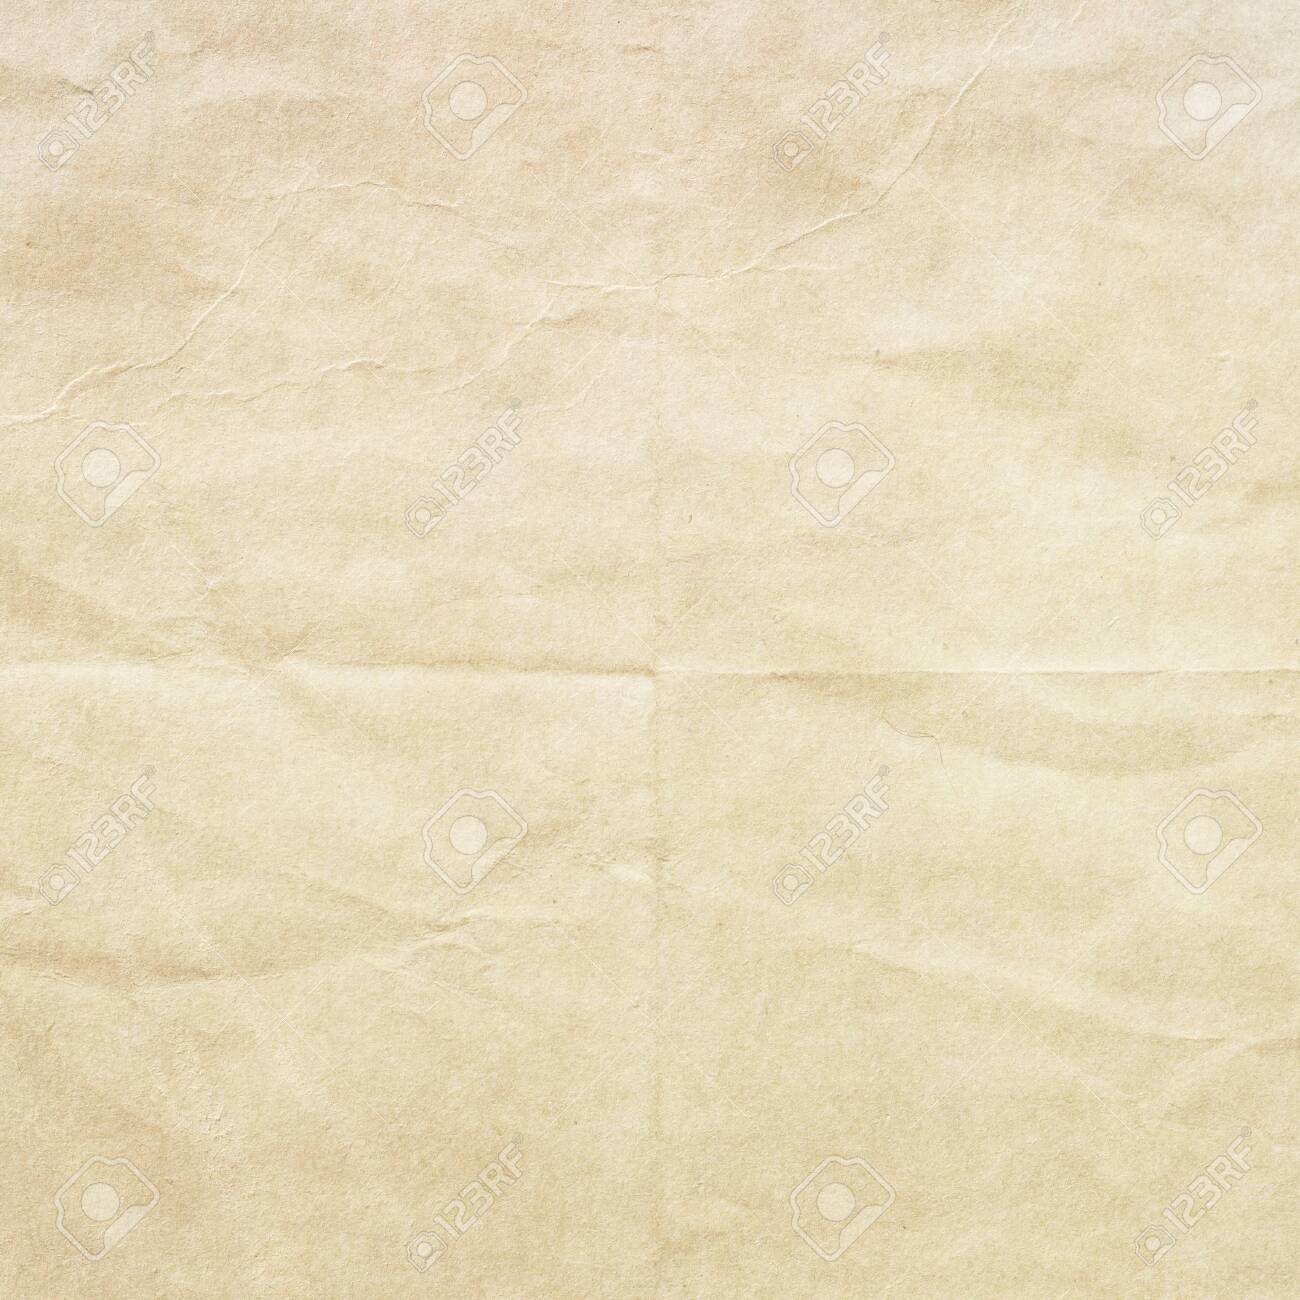 Old blank paper texture or background - 151009992